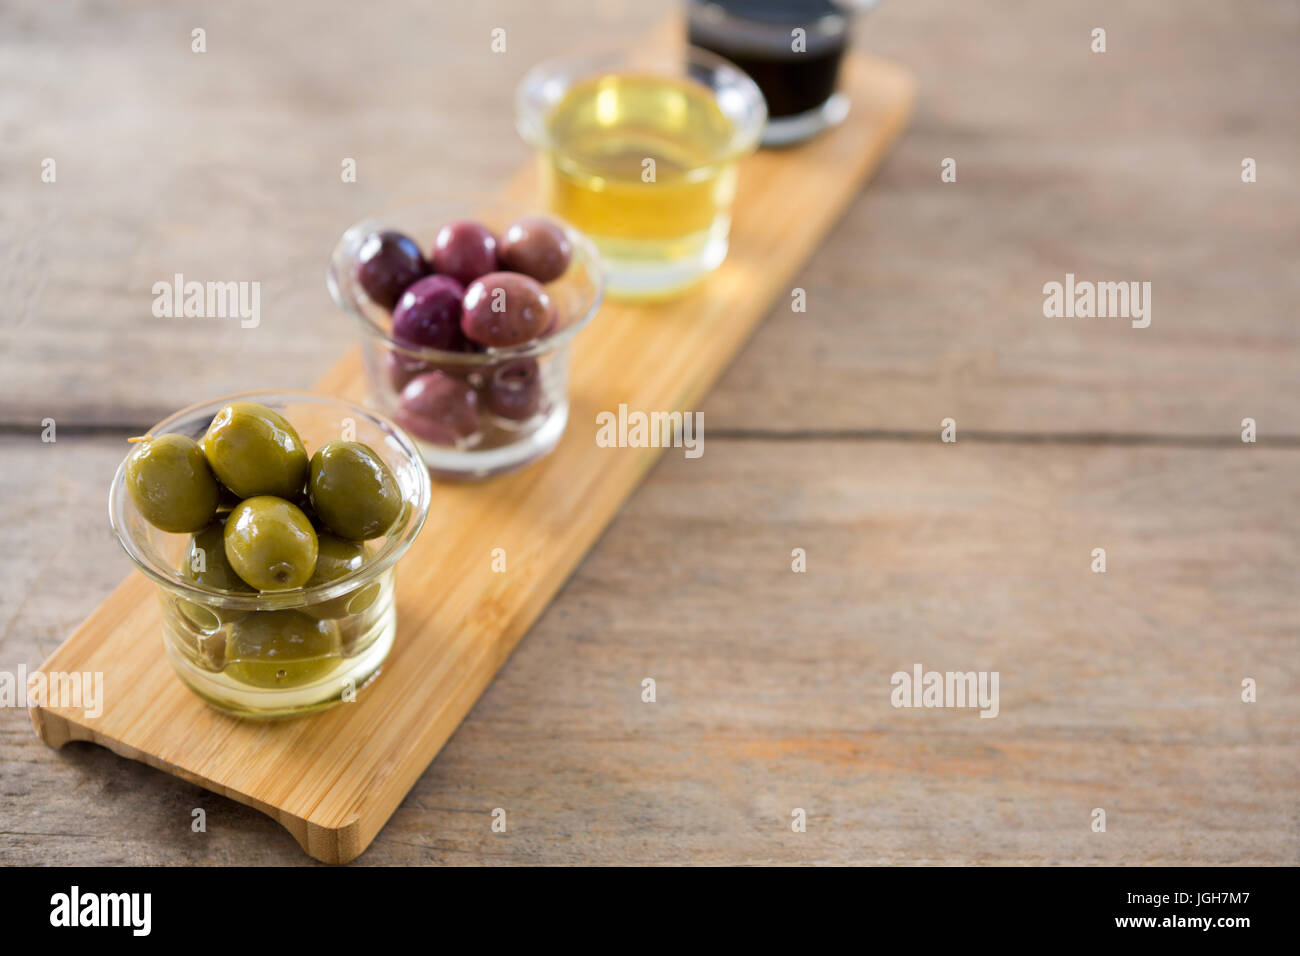 beee6cd22c7f Close-up of marinated olives with olive oil and balsamic vinegar in glass  container on a wooden tray